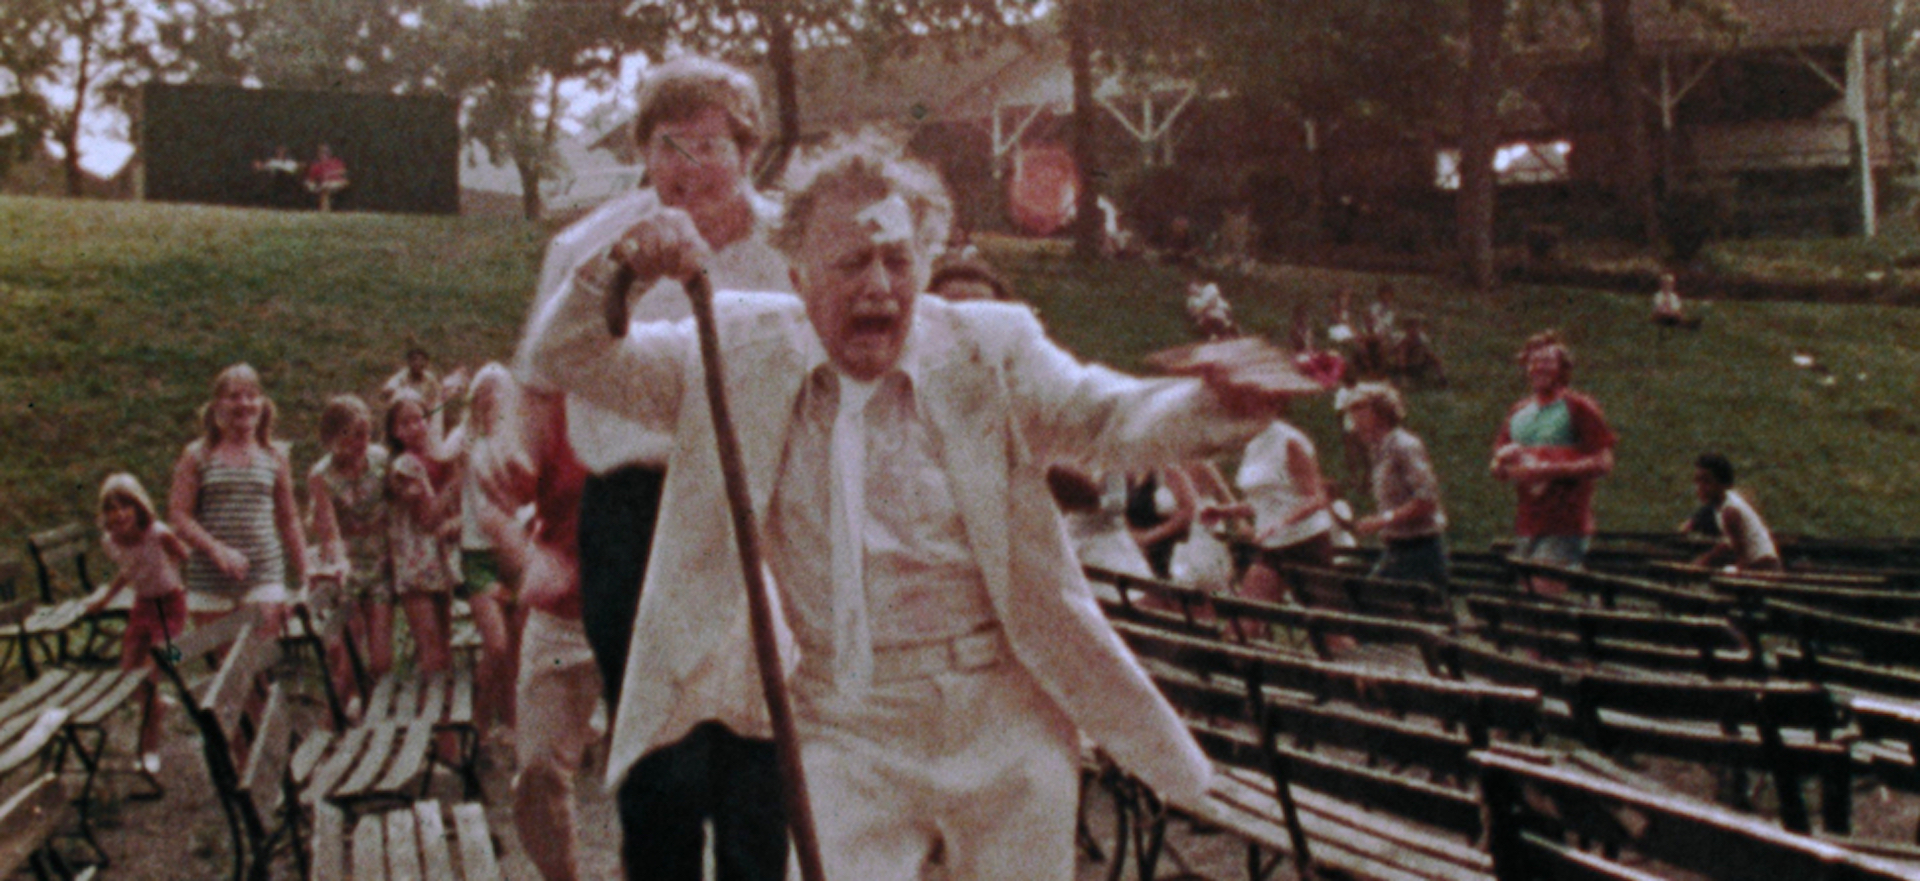 The Amusement Park Review: A Lost Classic Brought Back From the Dead